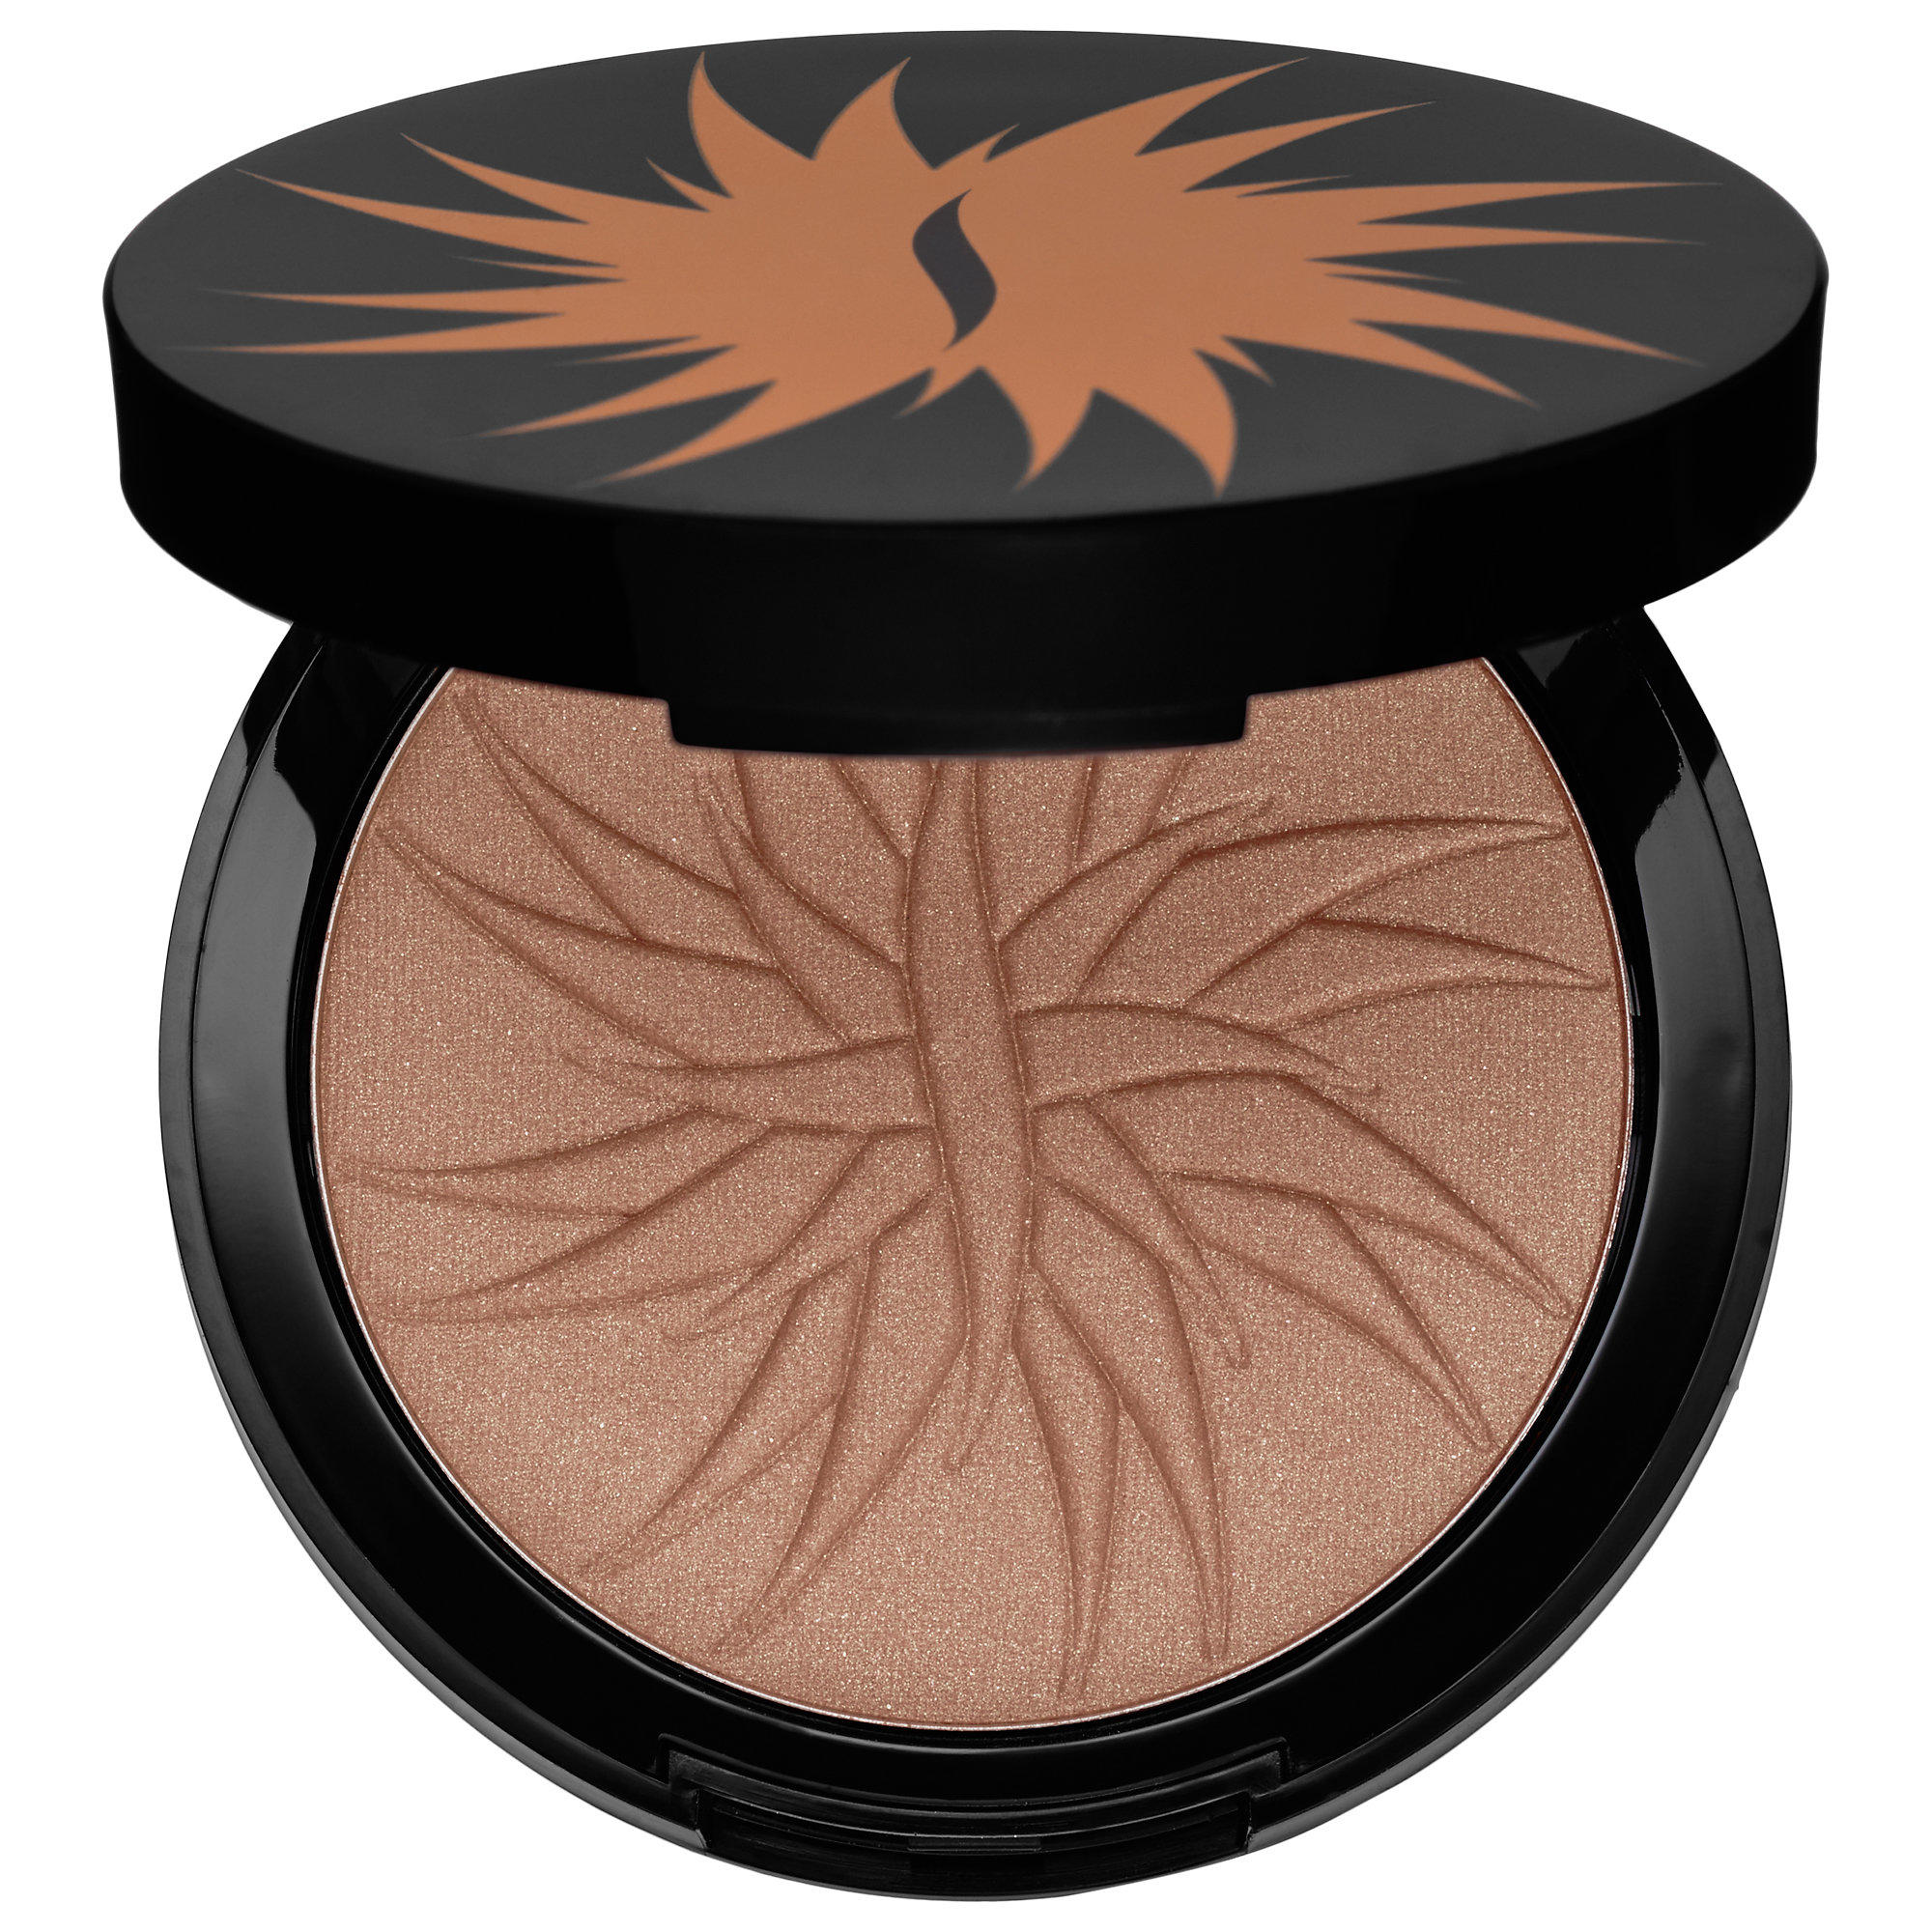 Sephora Bronzing Face Powder Fiji Medium 4